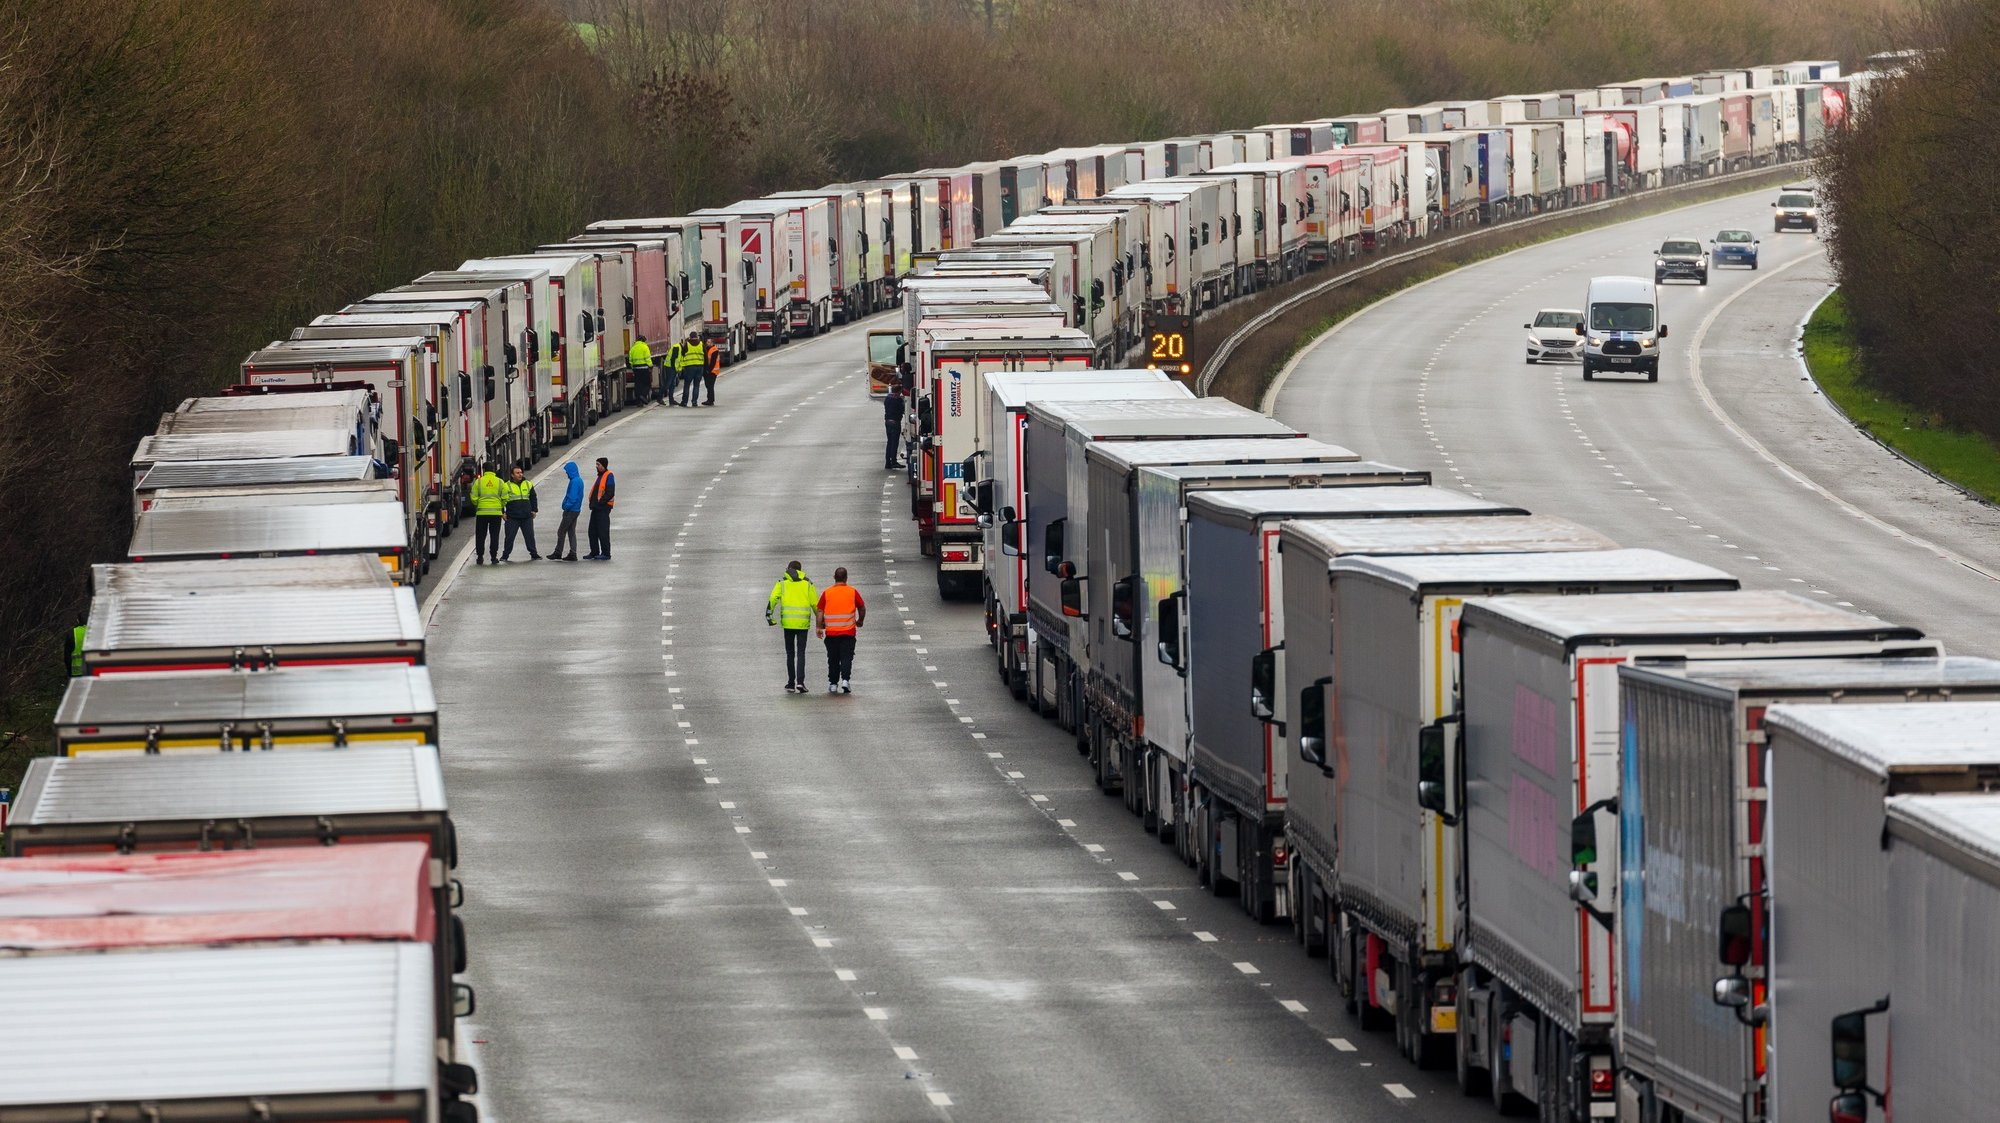 epa08901082 Queues of stationary lorries on the M20 motorway between Ashford and Folkestone in Kent, Britain, 23 December 2020. France closed its border with the UK for 48 hours over concerns about the new coronavirus variant. Lorry drivers must now obtain negative coronavirus tests before they will be allowed to cross by sea and the Port of Dover remains closed to outbound traffic on the morning of 23 December 2020.  EPA/VICKIE FLORES